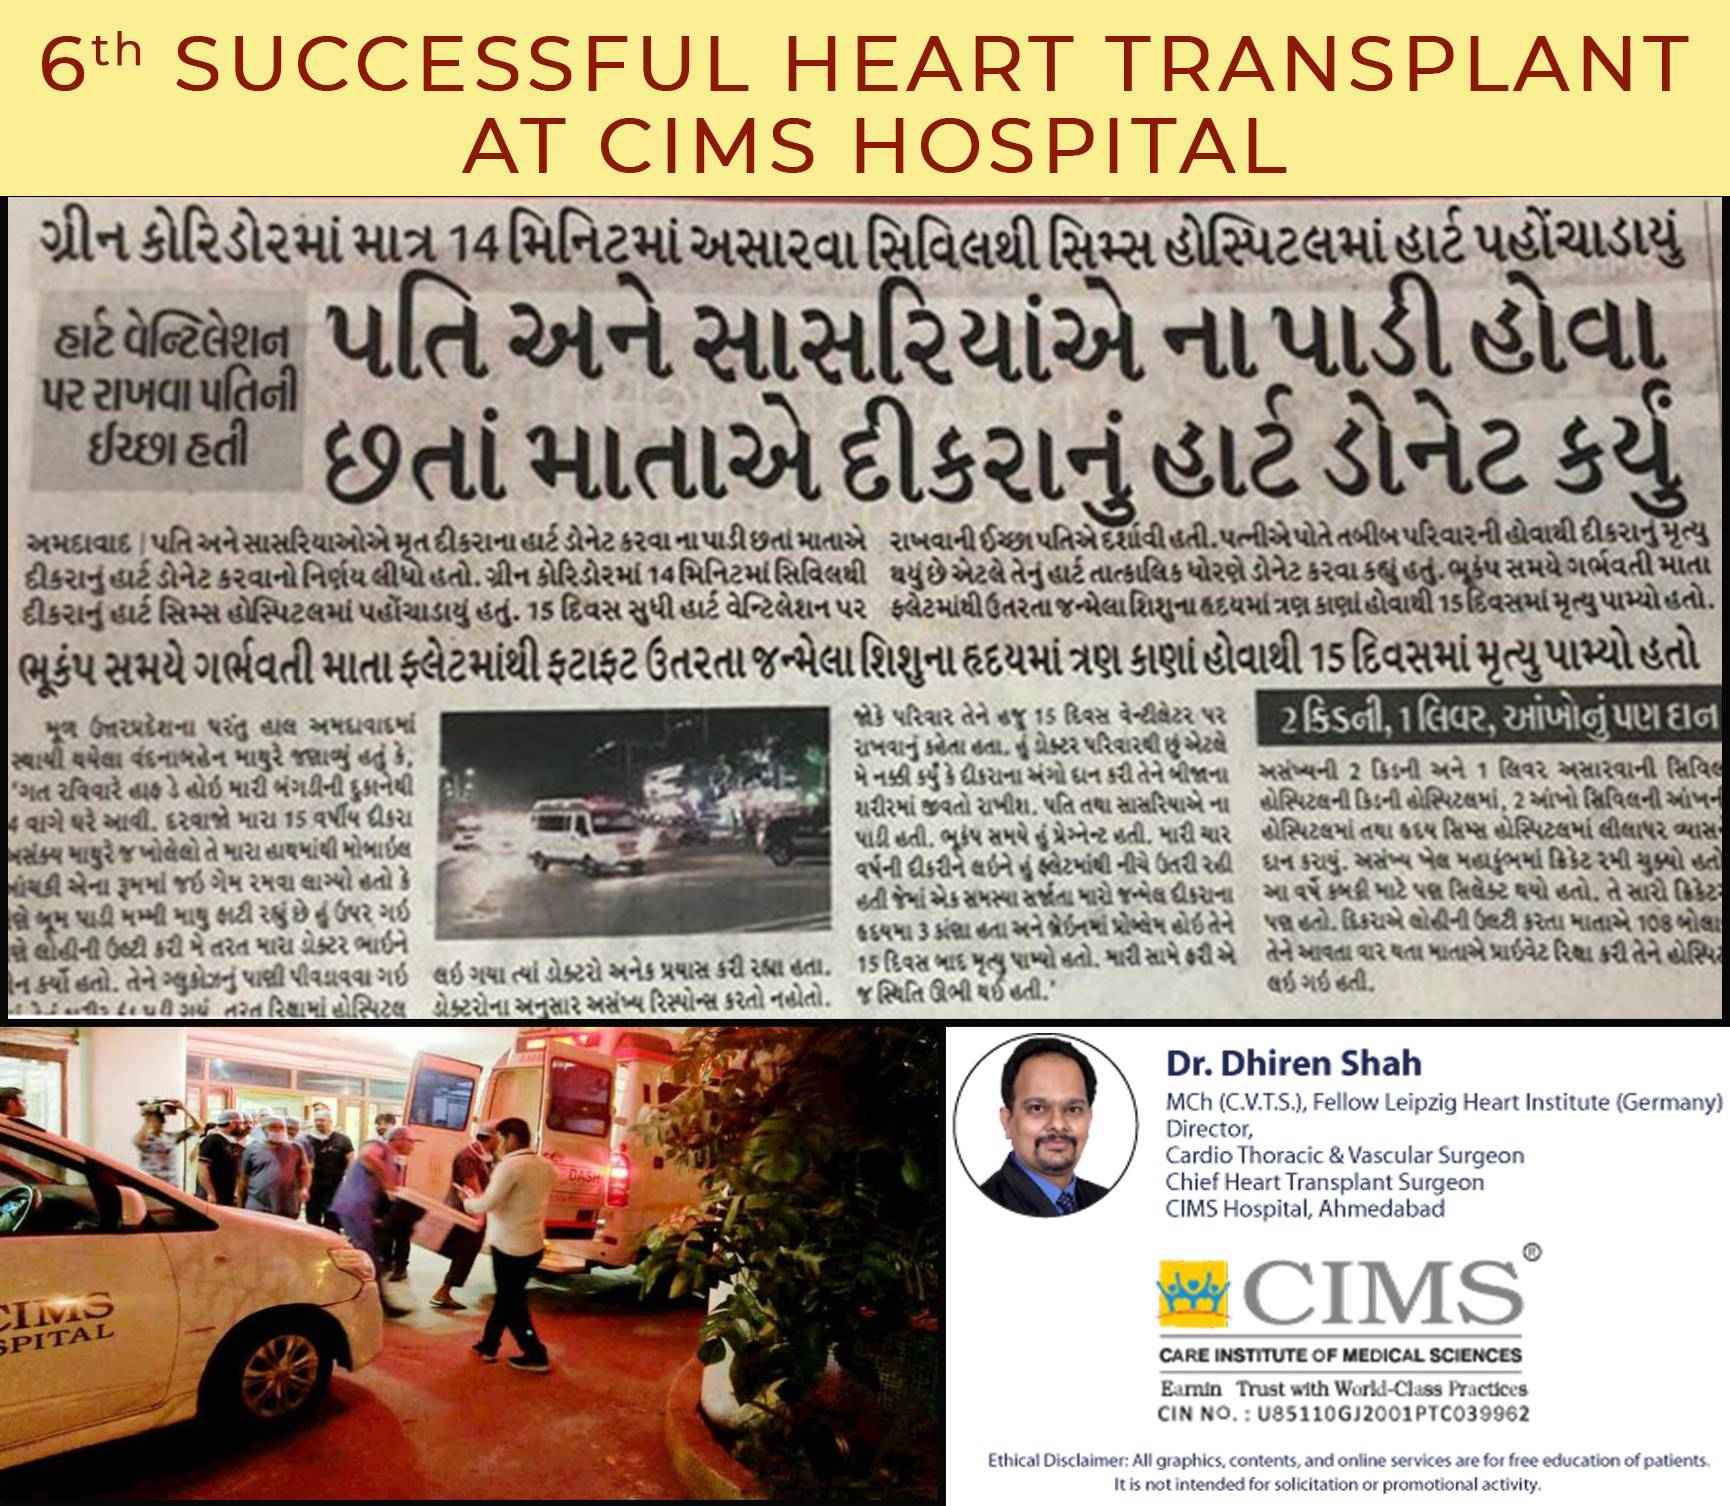 At CIMS hospital today we completed 6th successfull heart transplant.